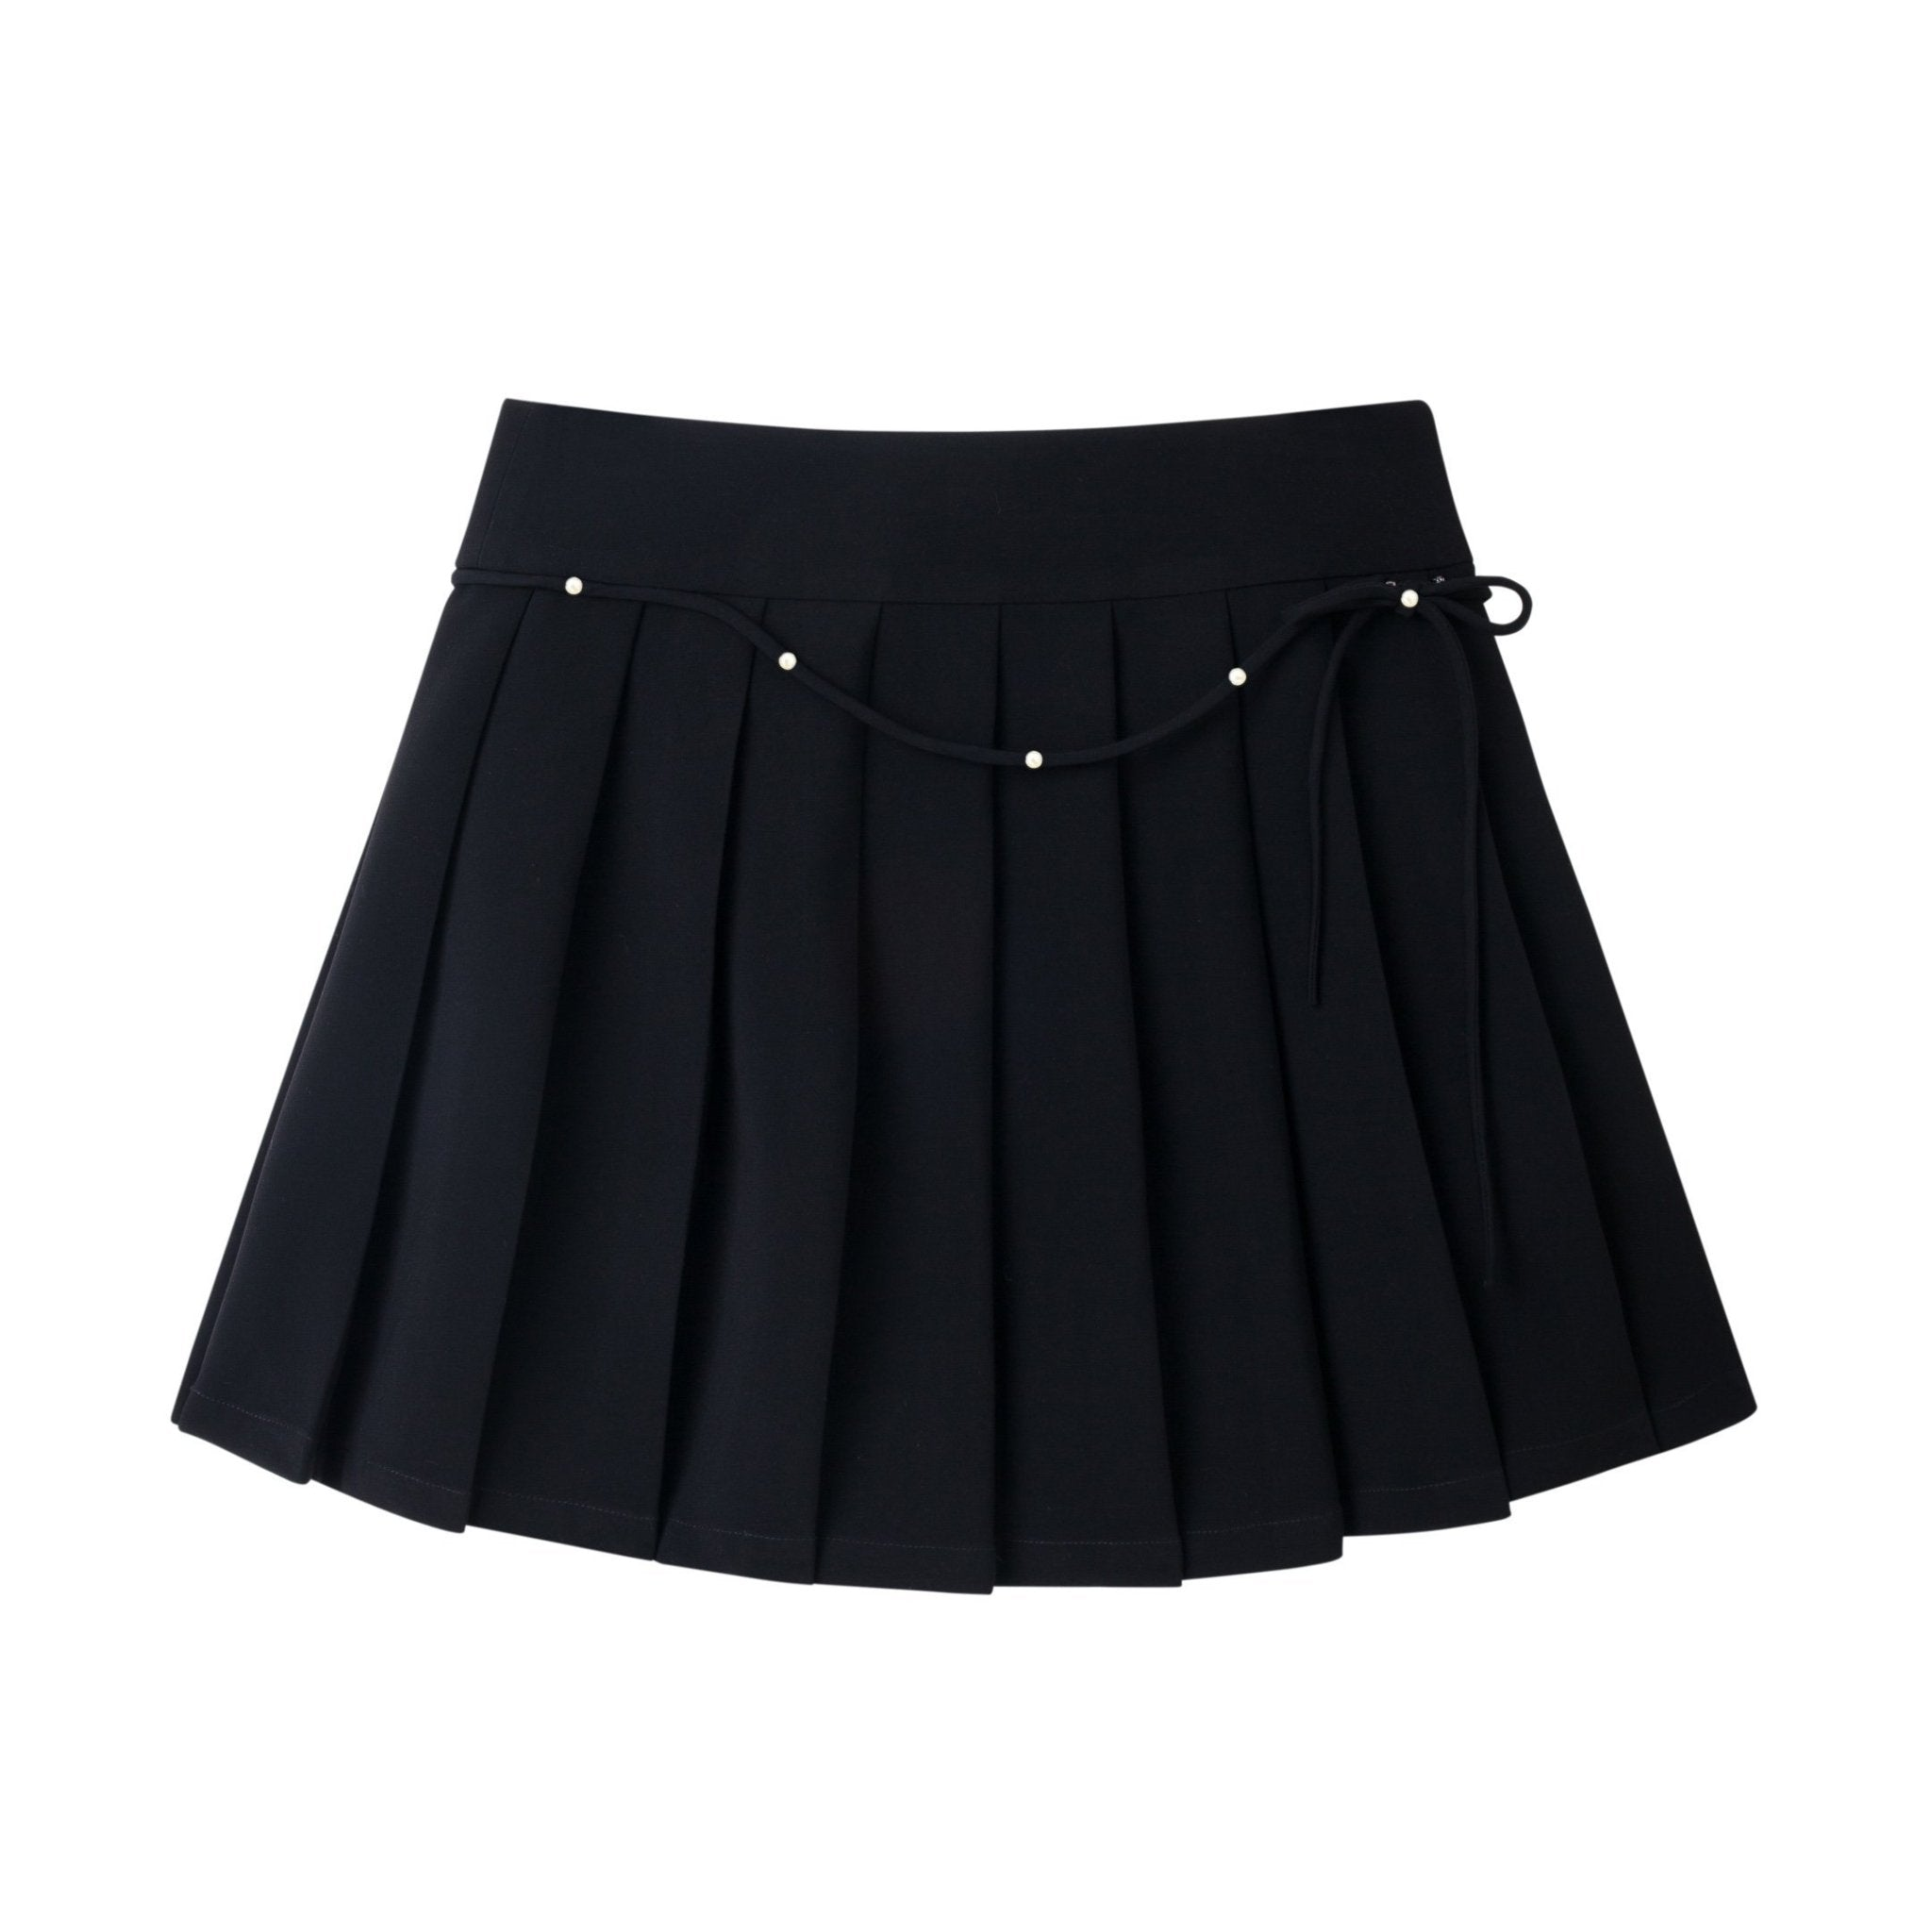 HERLIAN Black Bowtie Pleated Skirt | MADA IN CHINA